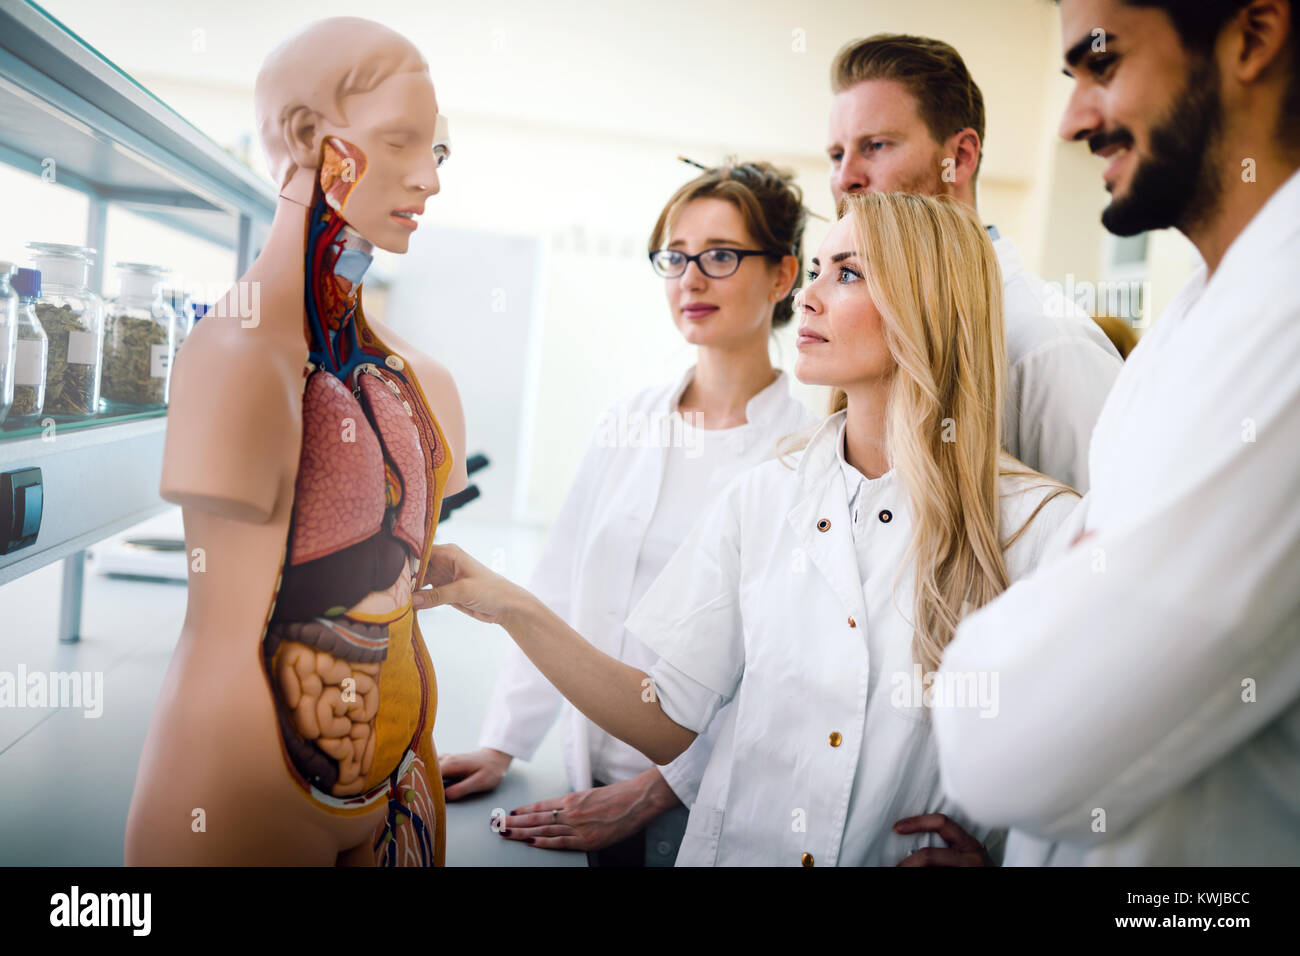 Students With Anatomical Model Stock Photos & Students With ...